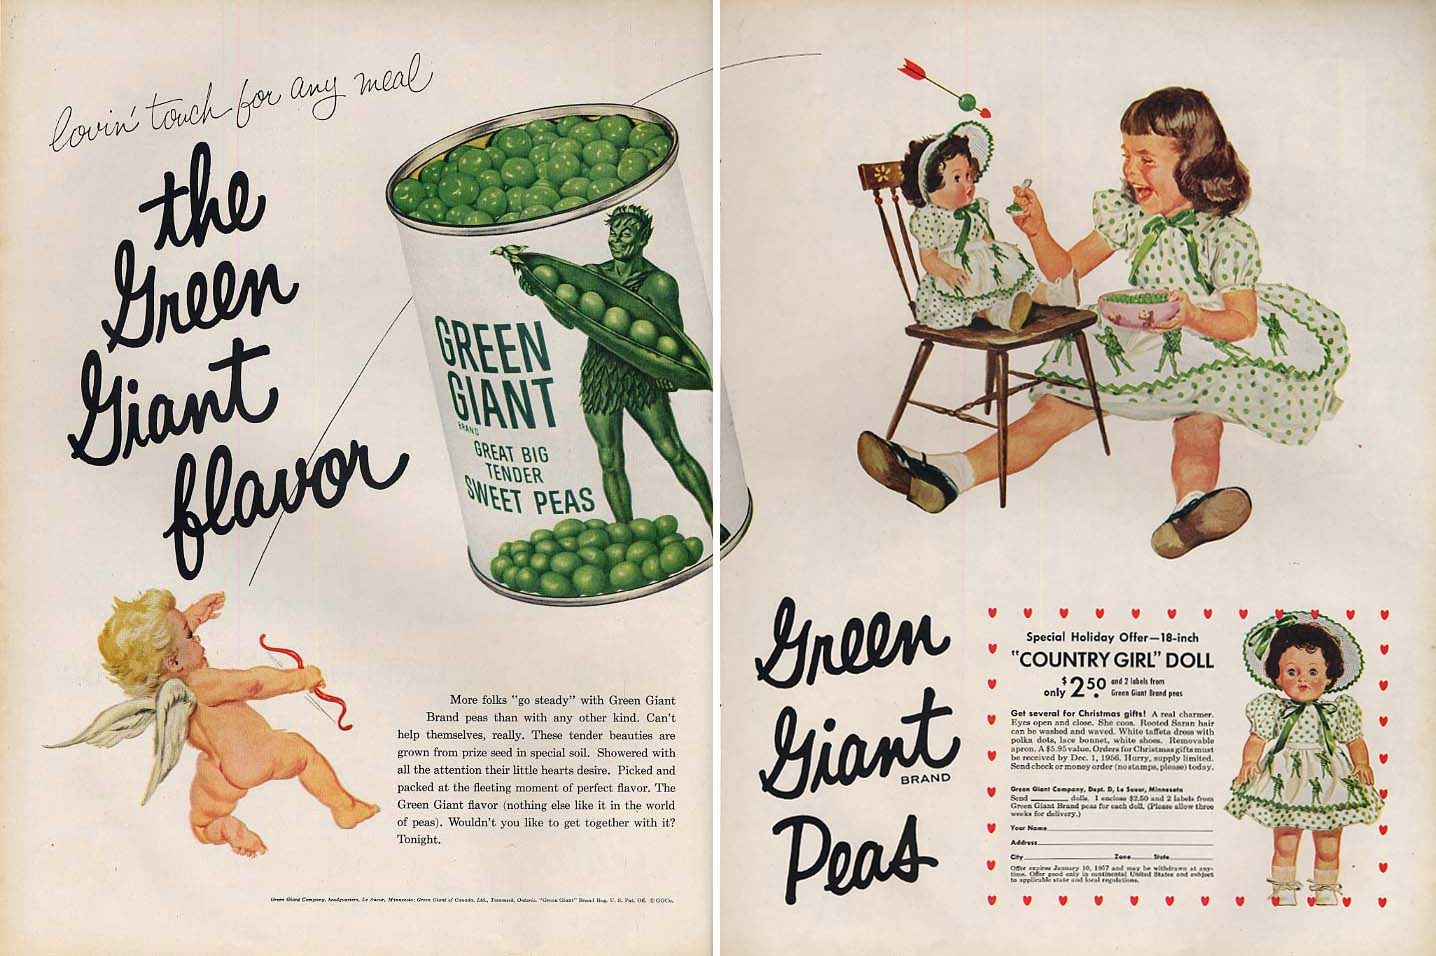 Green Giant Peas Country Girl Doll offer advertisement 1956 L